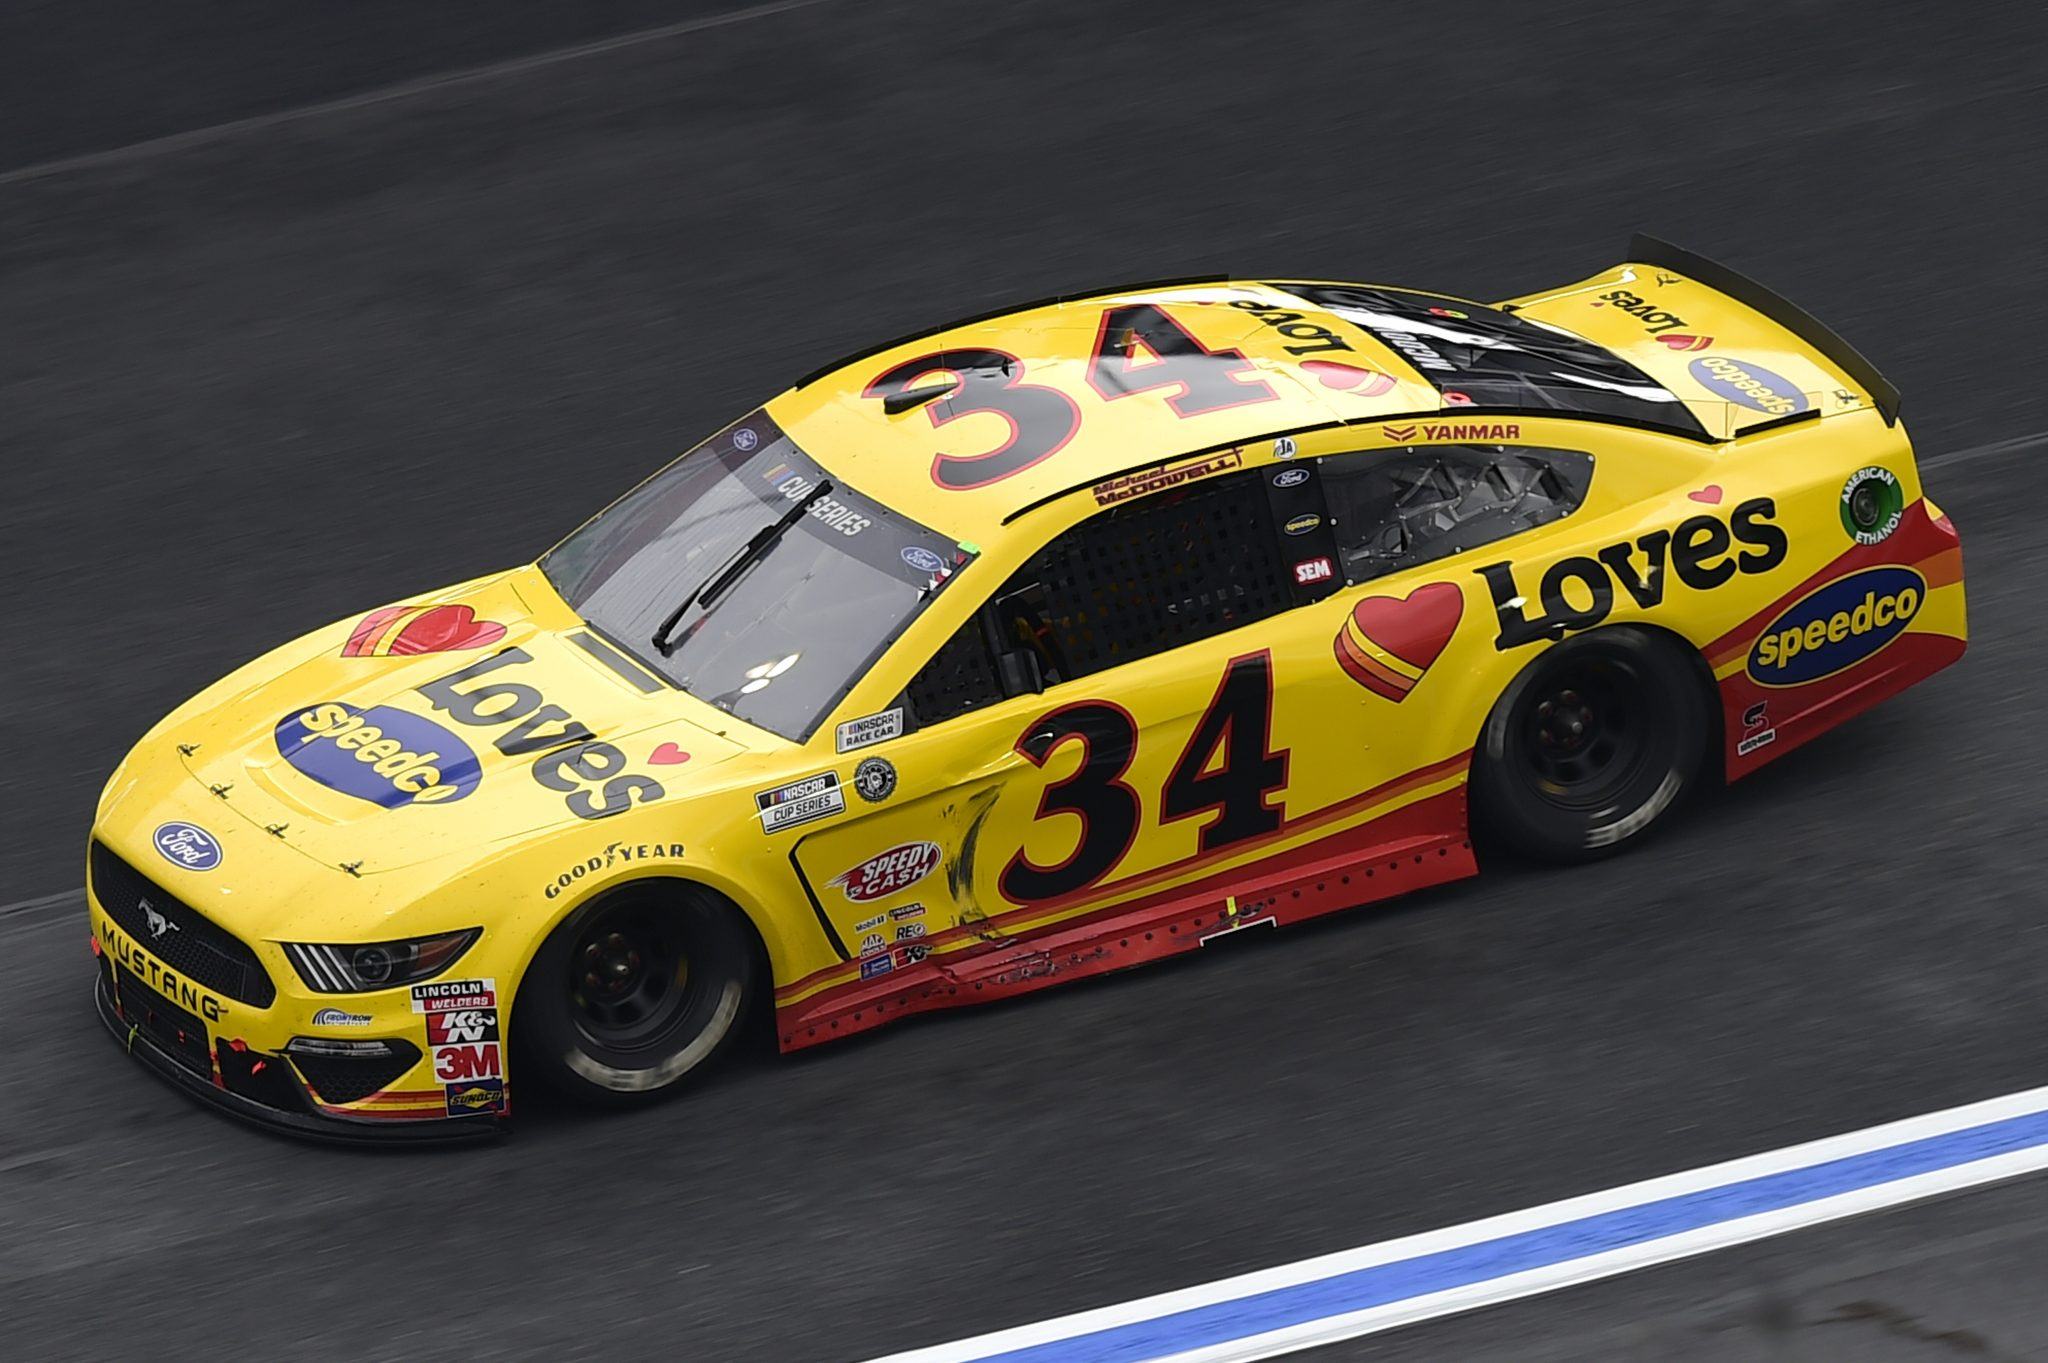 CONCORD, NORTH CAROLINA - OCTOBER 11: Michael McDowell, driver of the #34 Love's Travel Stops Ford, drives during the NASCAR Cup Series Bank of America ROVAL 400 at Charlotte Motor Speedway on October 11, 2020 in Concord, North Carolina. (Photo by Jared C. Tilton/Getty Images) | Getty Images